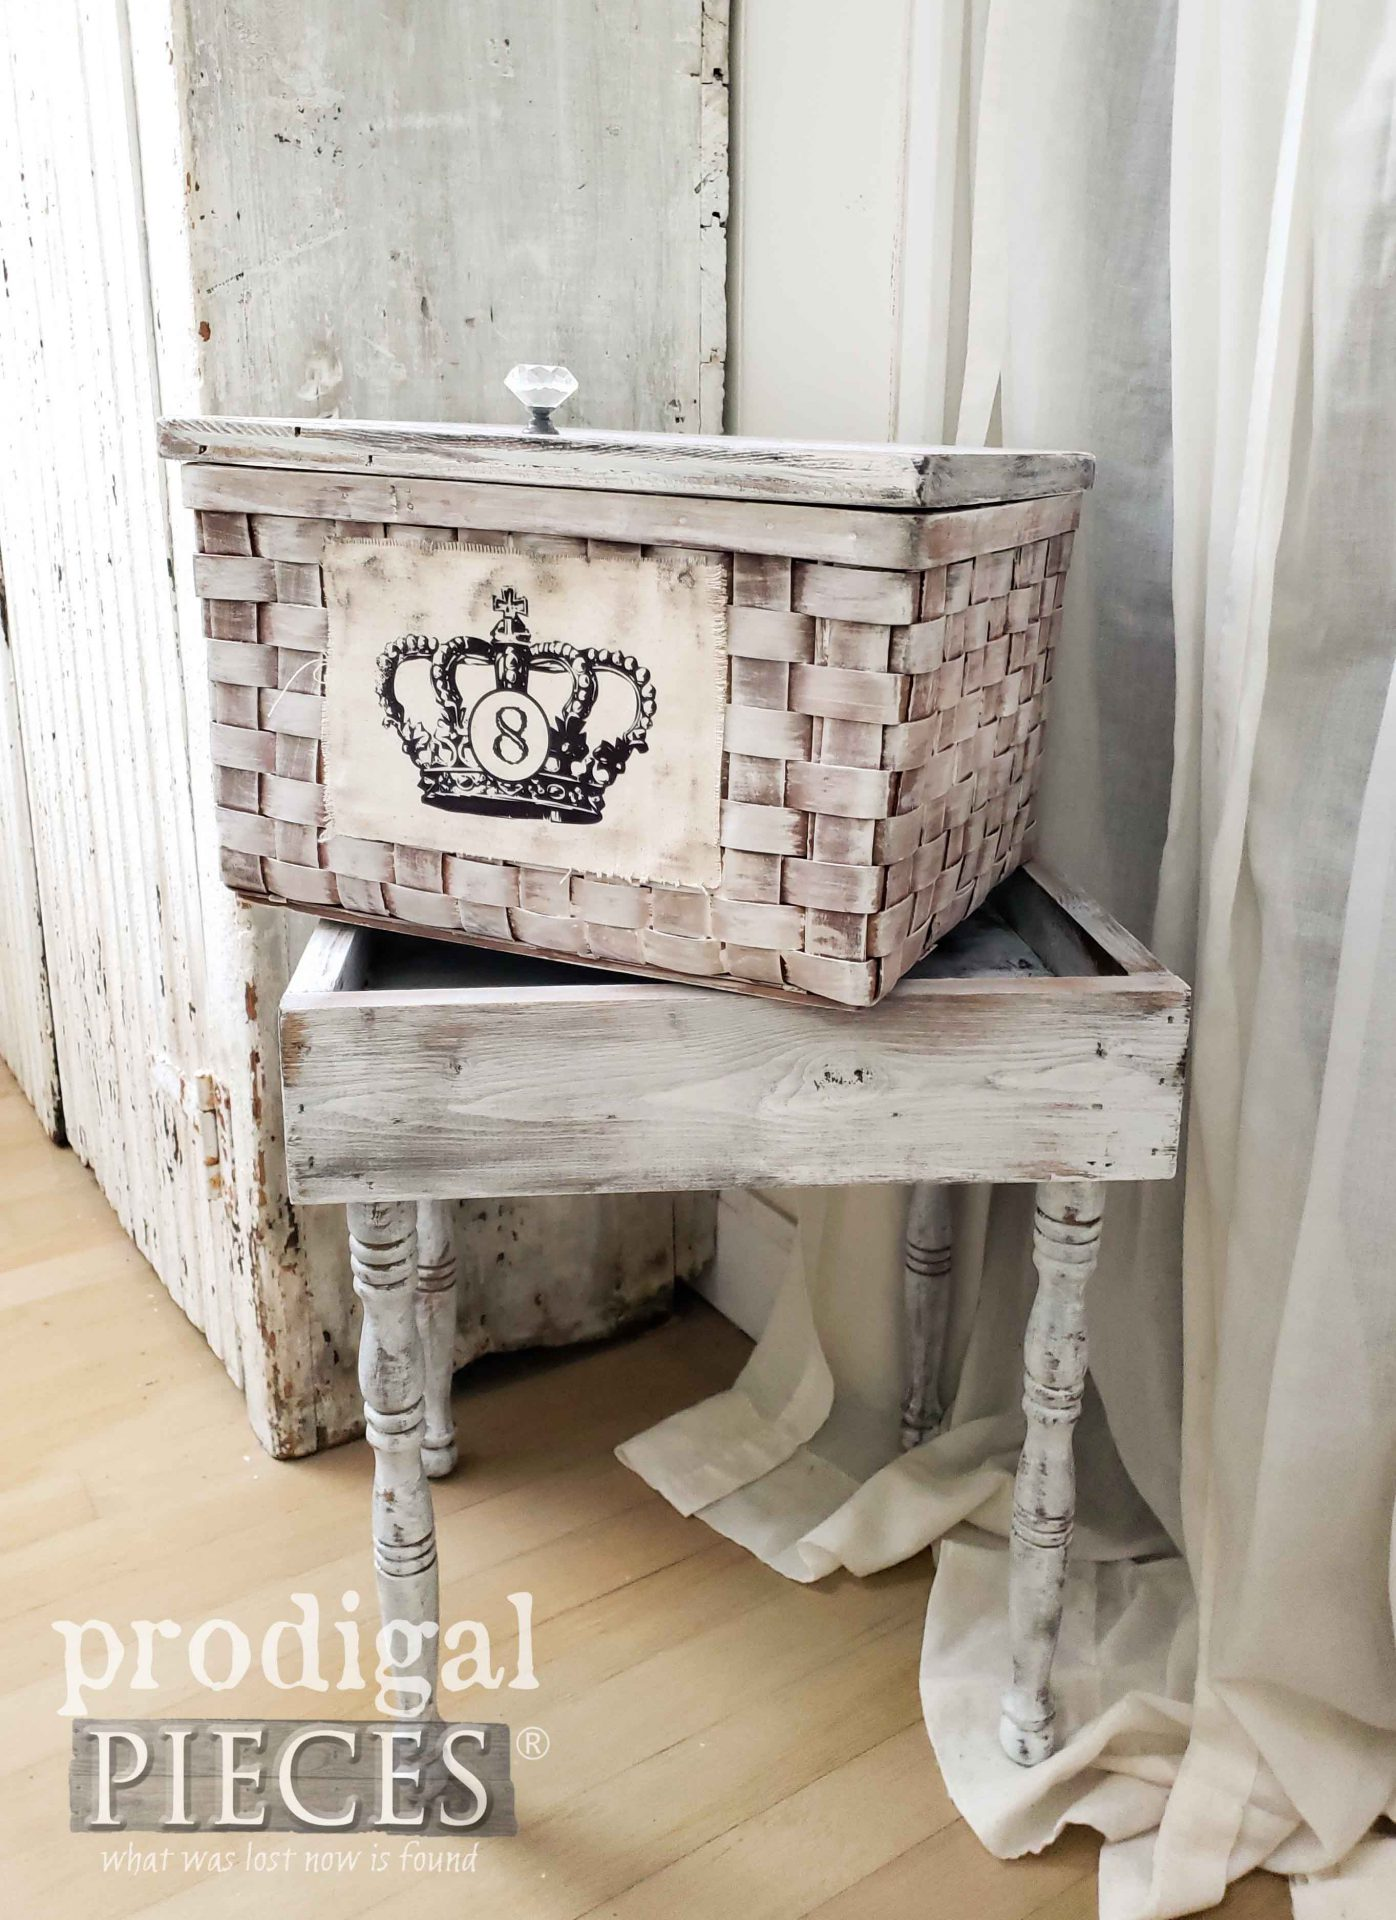 Removable Basket Table with Storage by Prodigal Pieces | prodigalpieces.com #prodigalpieces #diy #home #homedecor